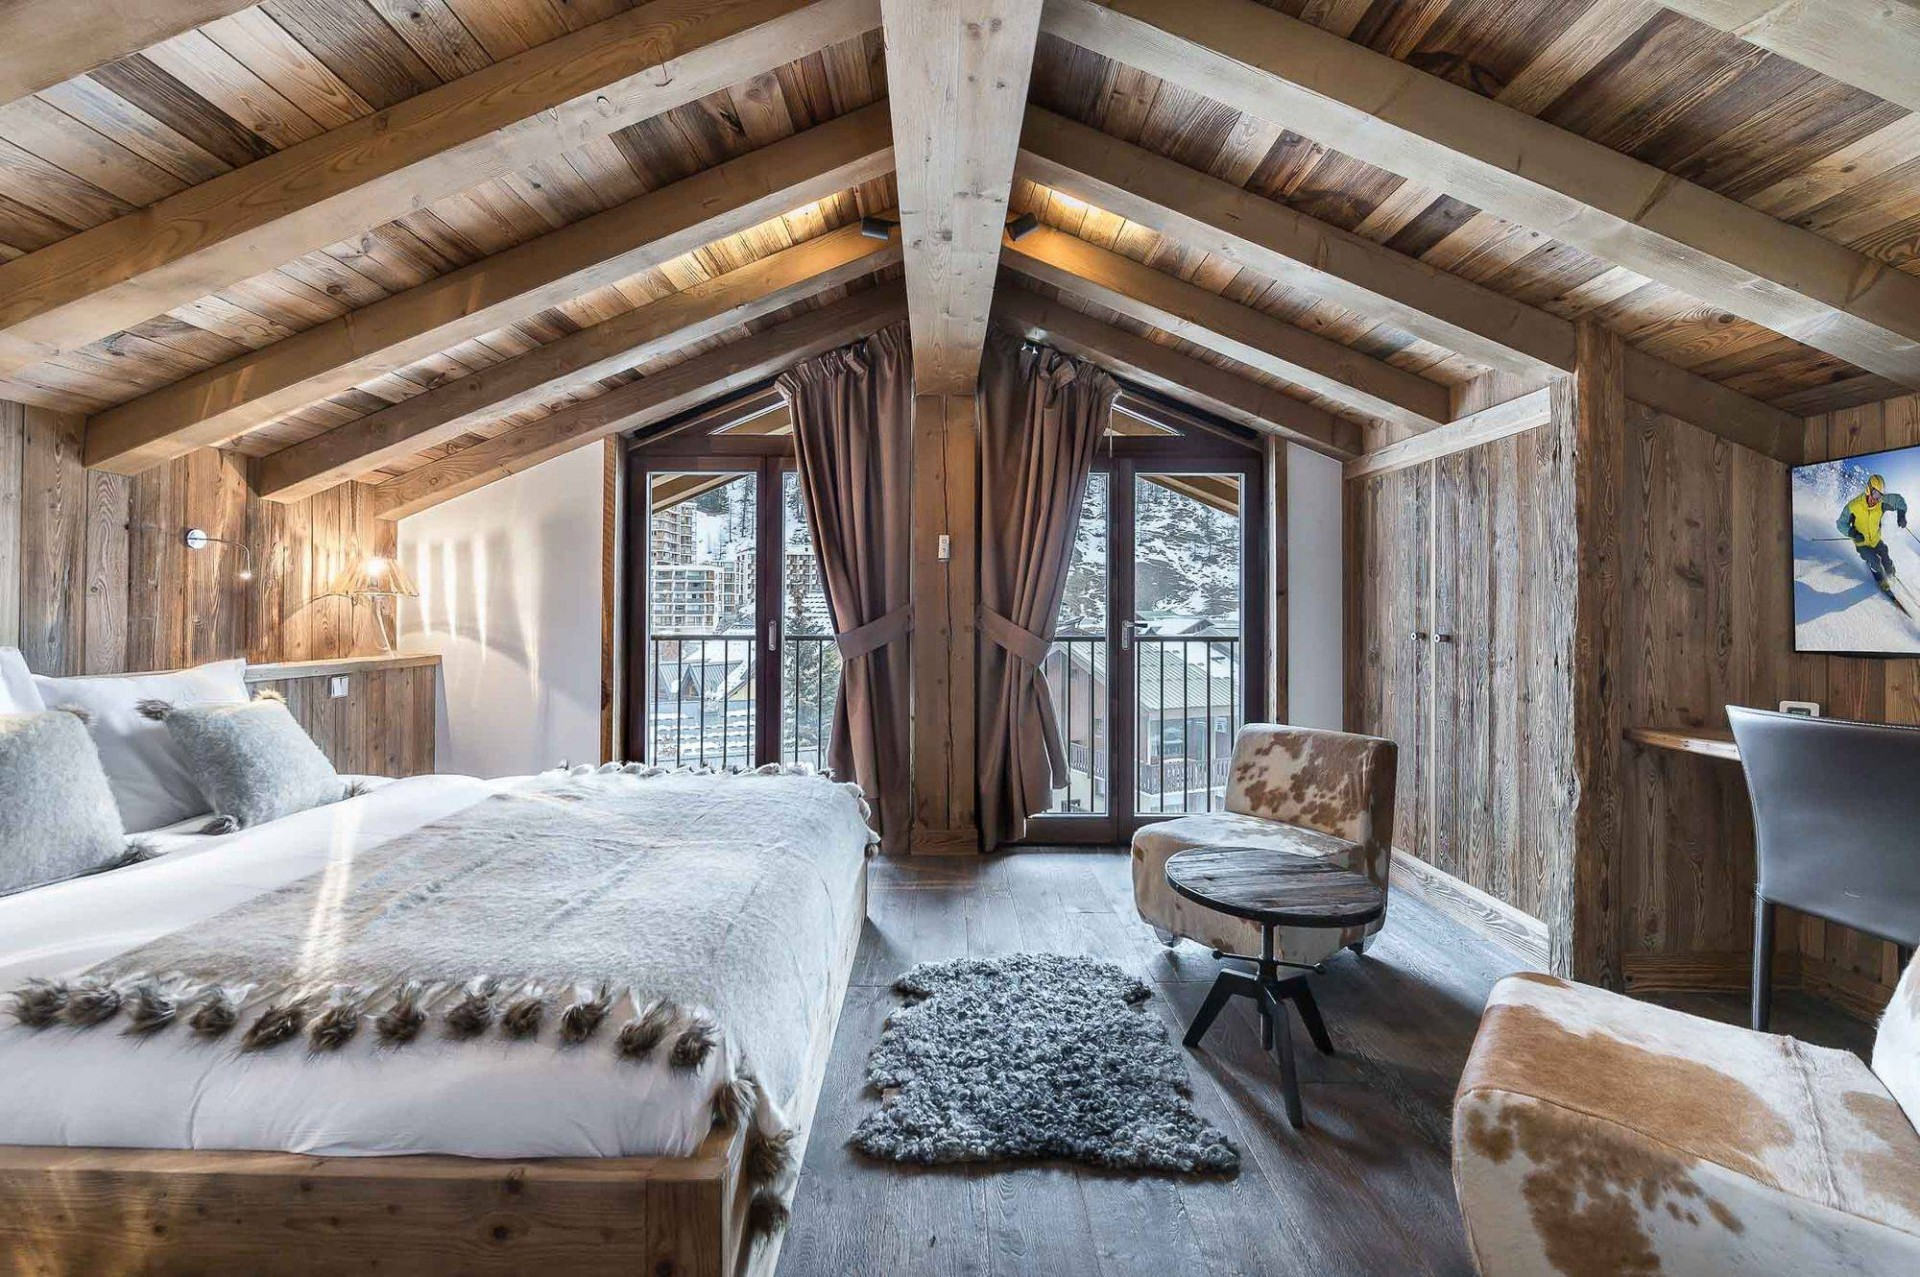 Val d'Isère Location Appartement Luxe Ulolite Chambre 3